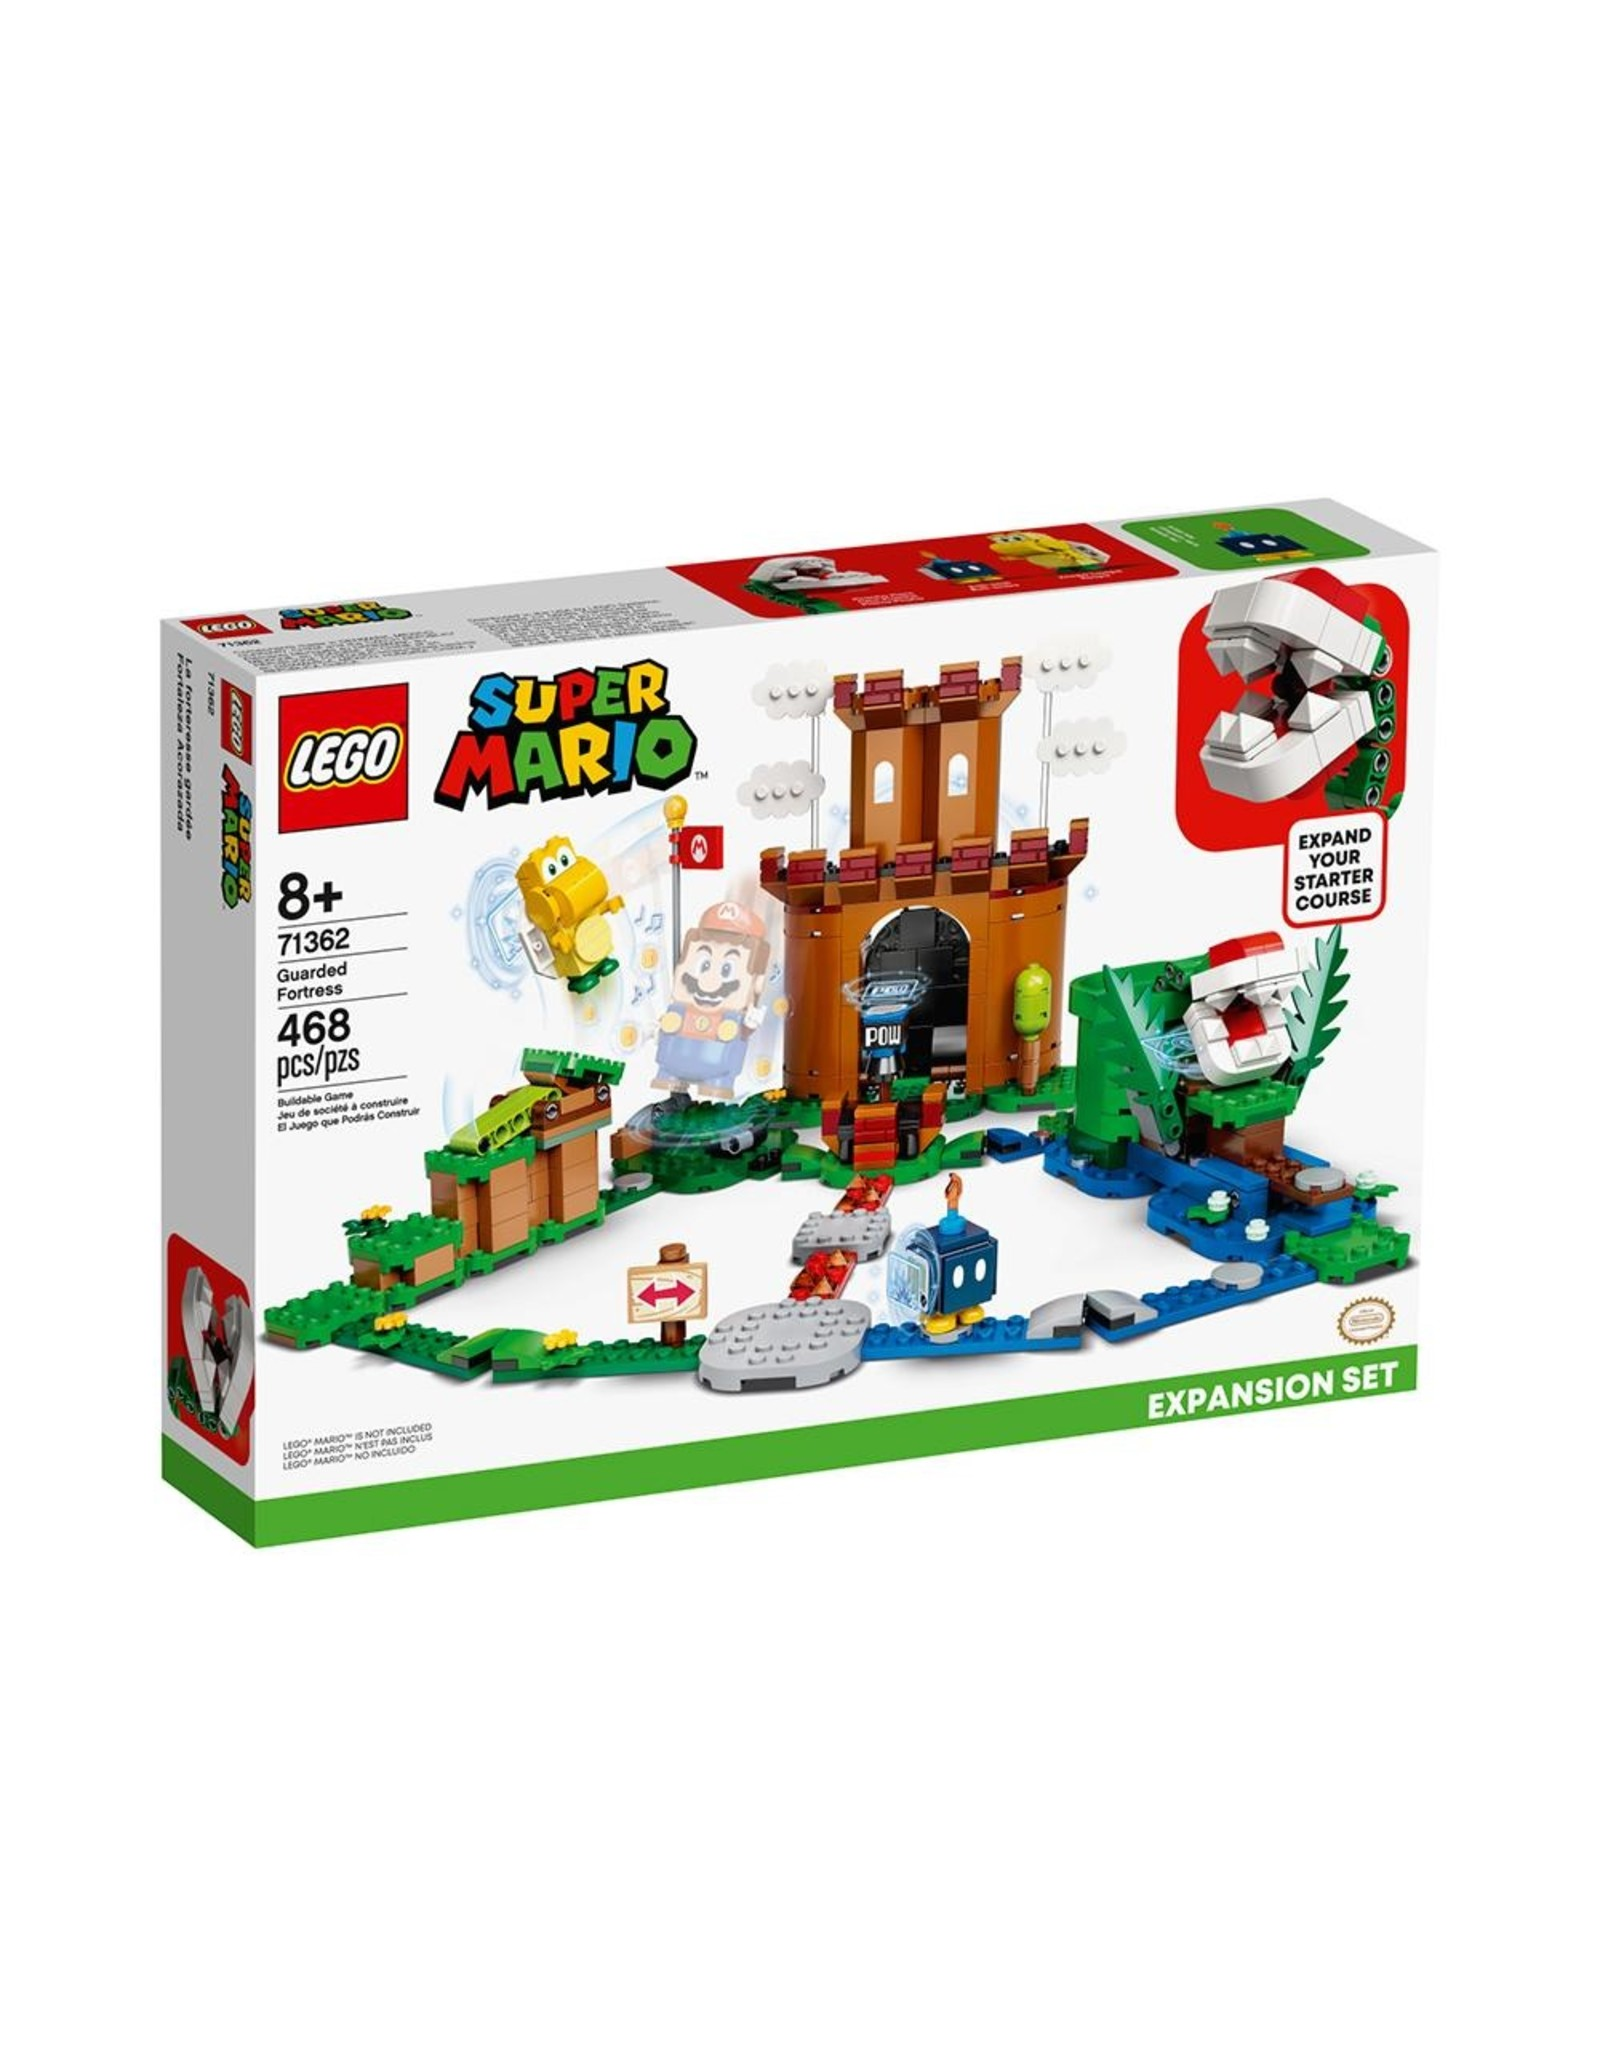 LEGO Super Mario - 71362 - Guarded Fortress Expansion Set